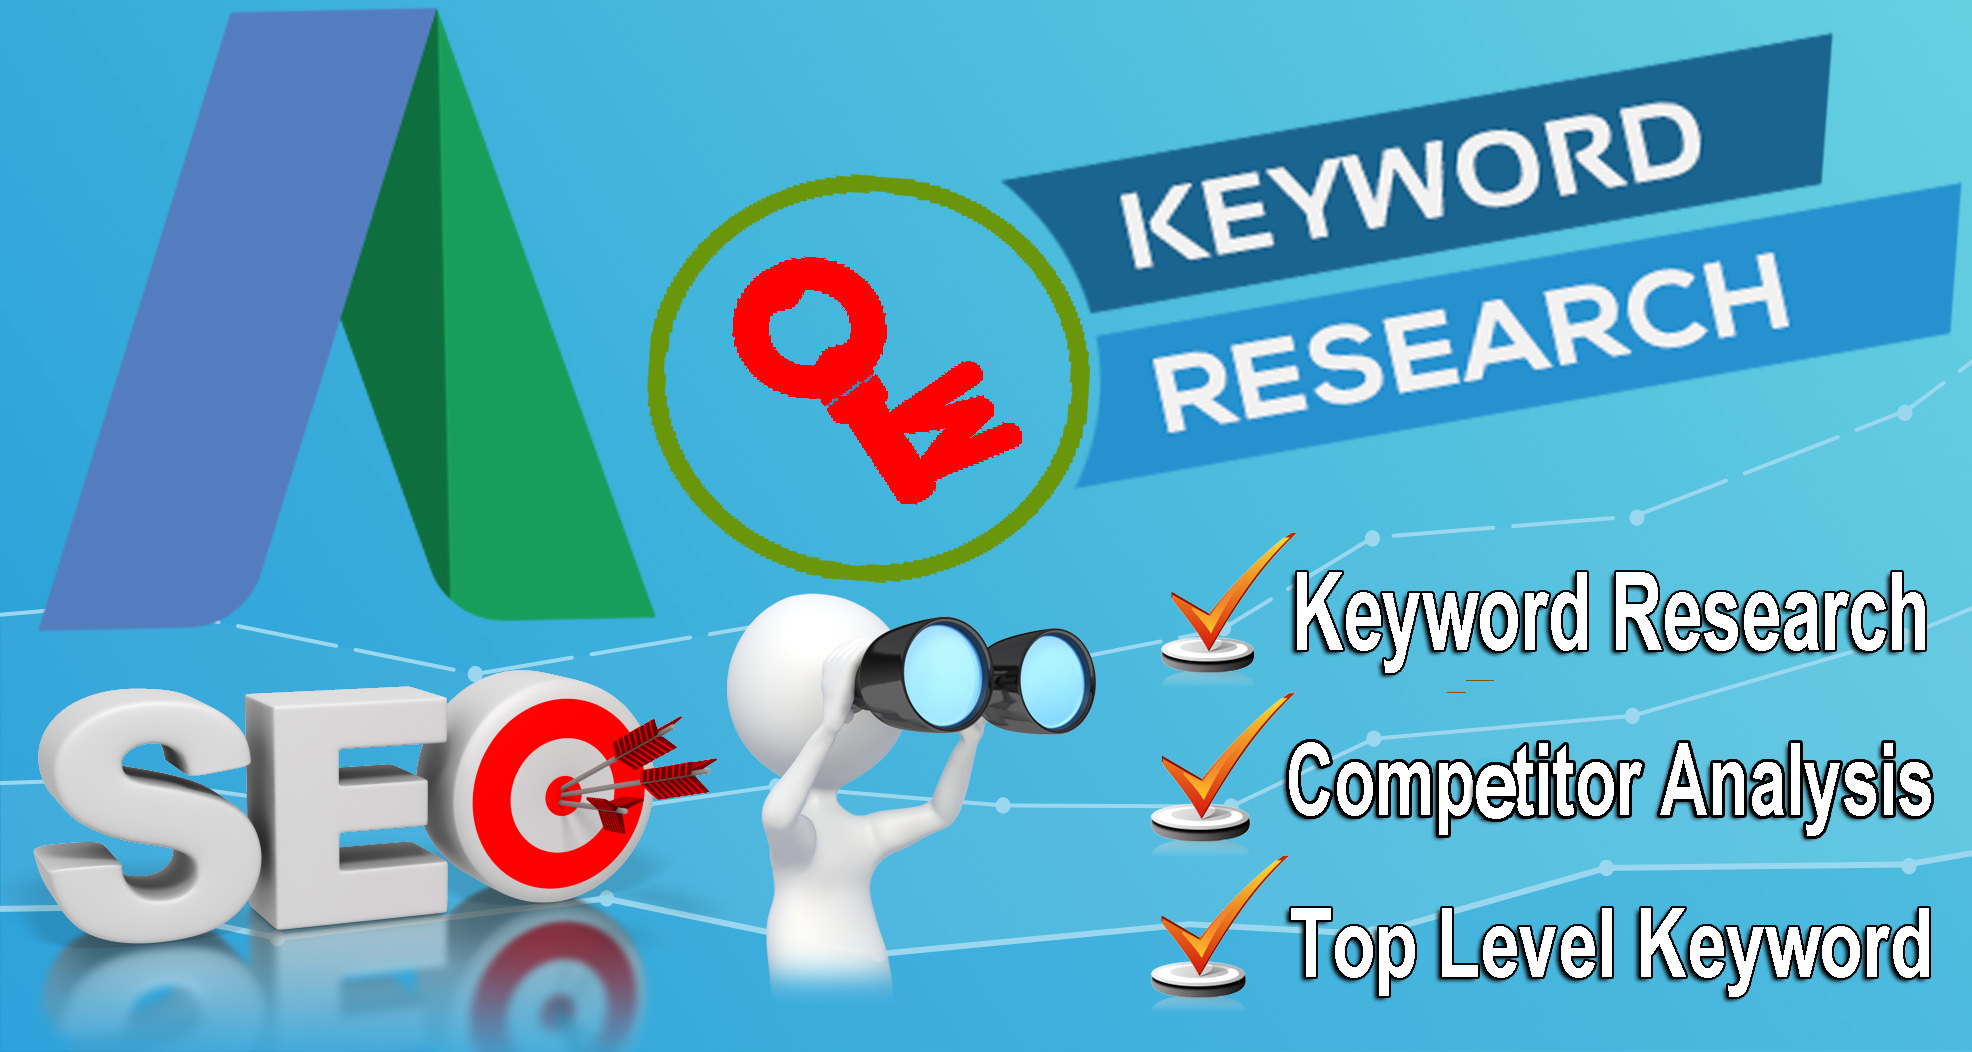 Keyword research and competitor analysis actually ranks